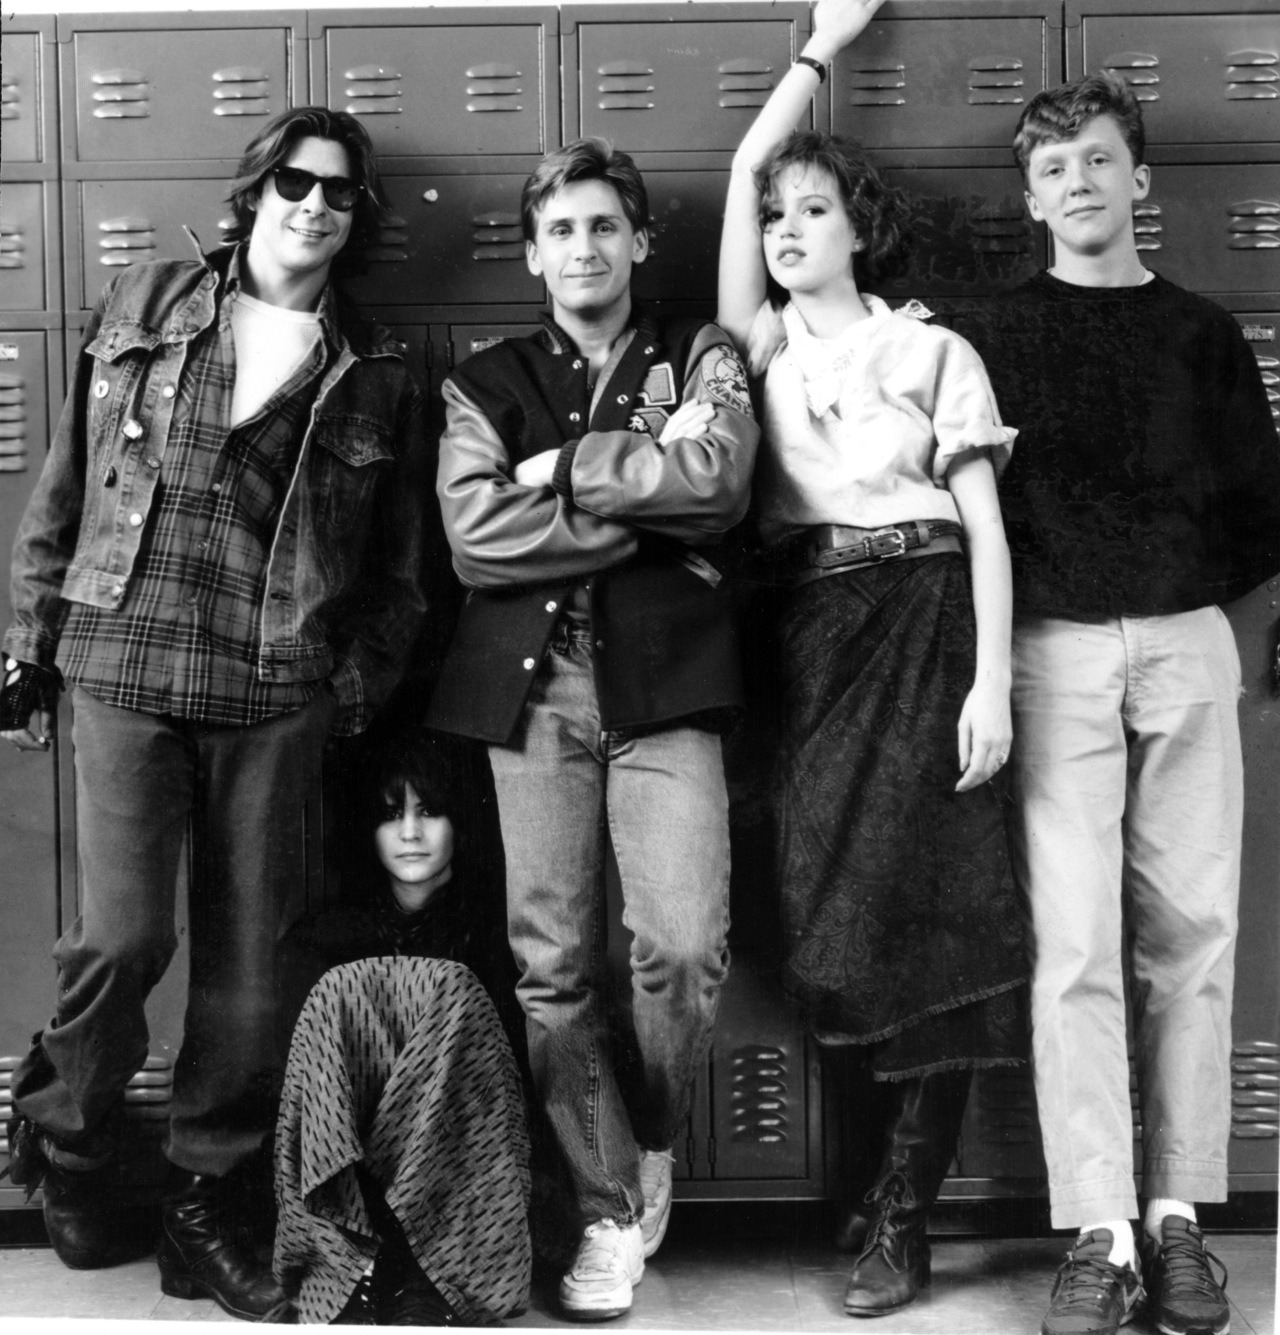 loveloveloveloveThe Breakfast Club